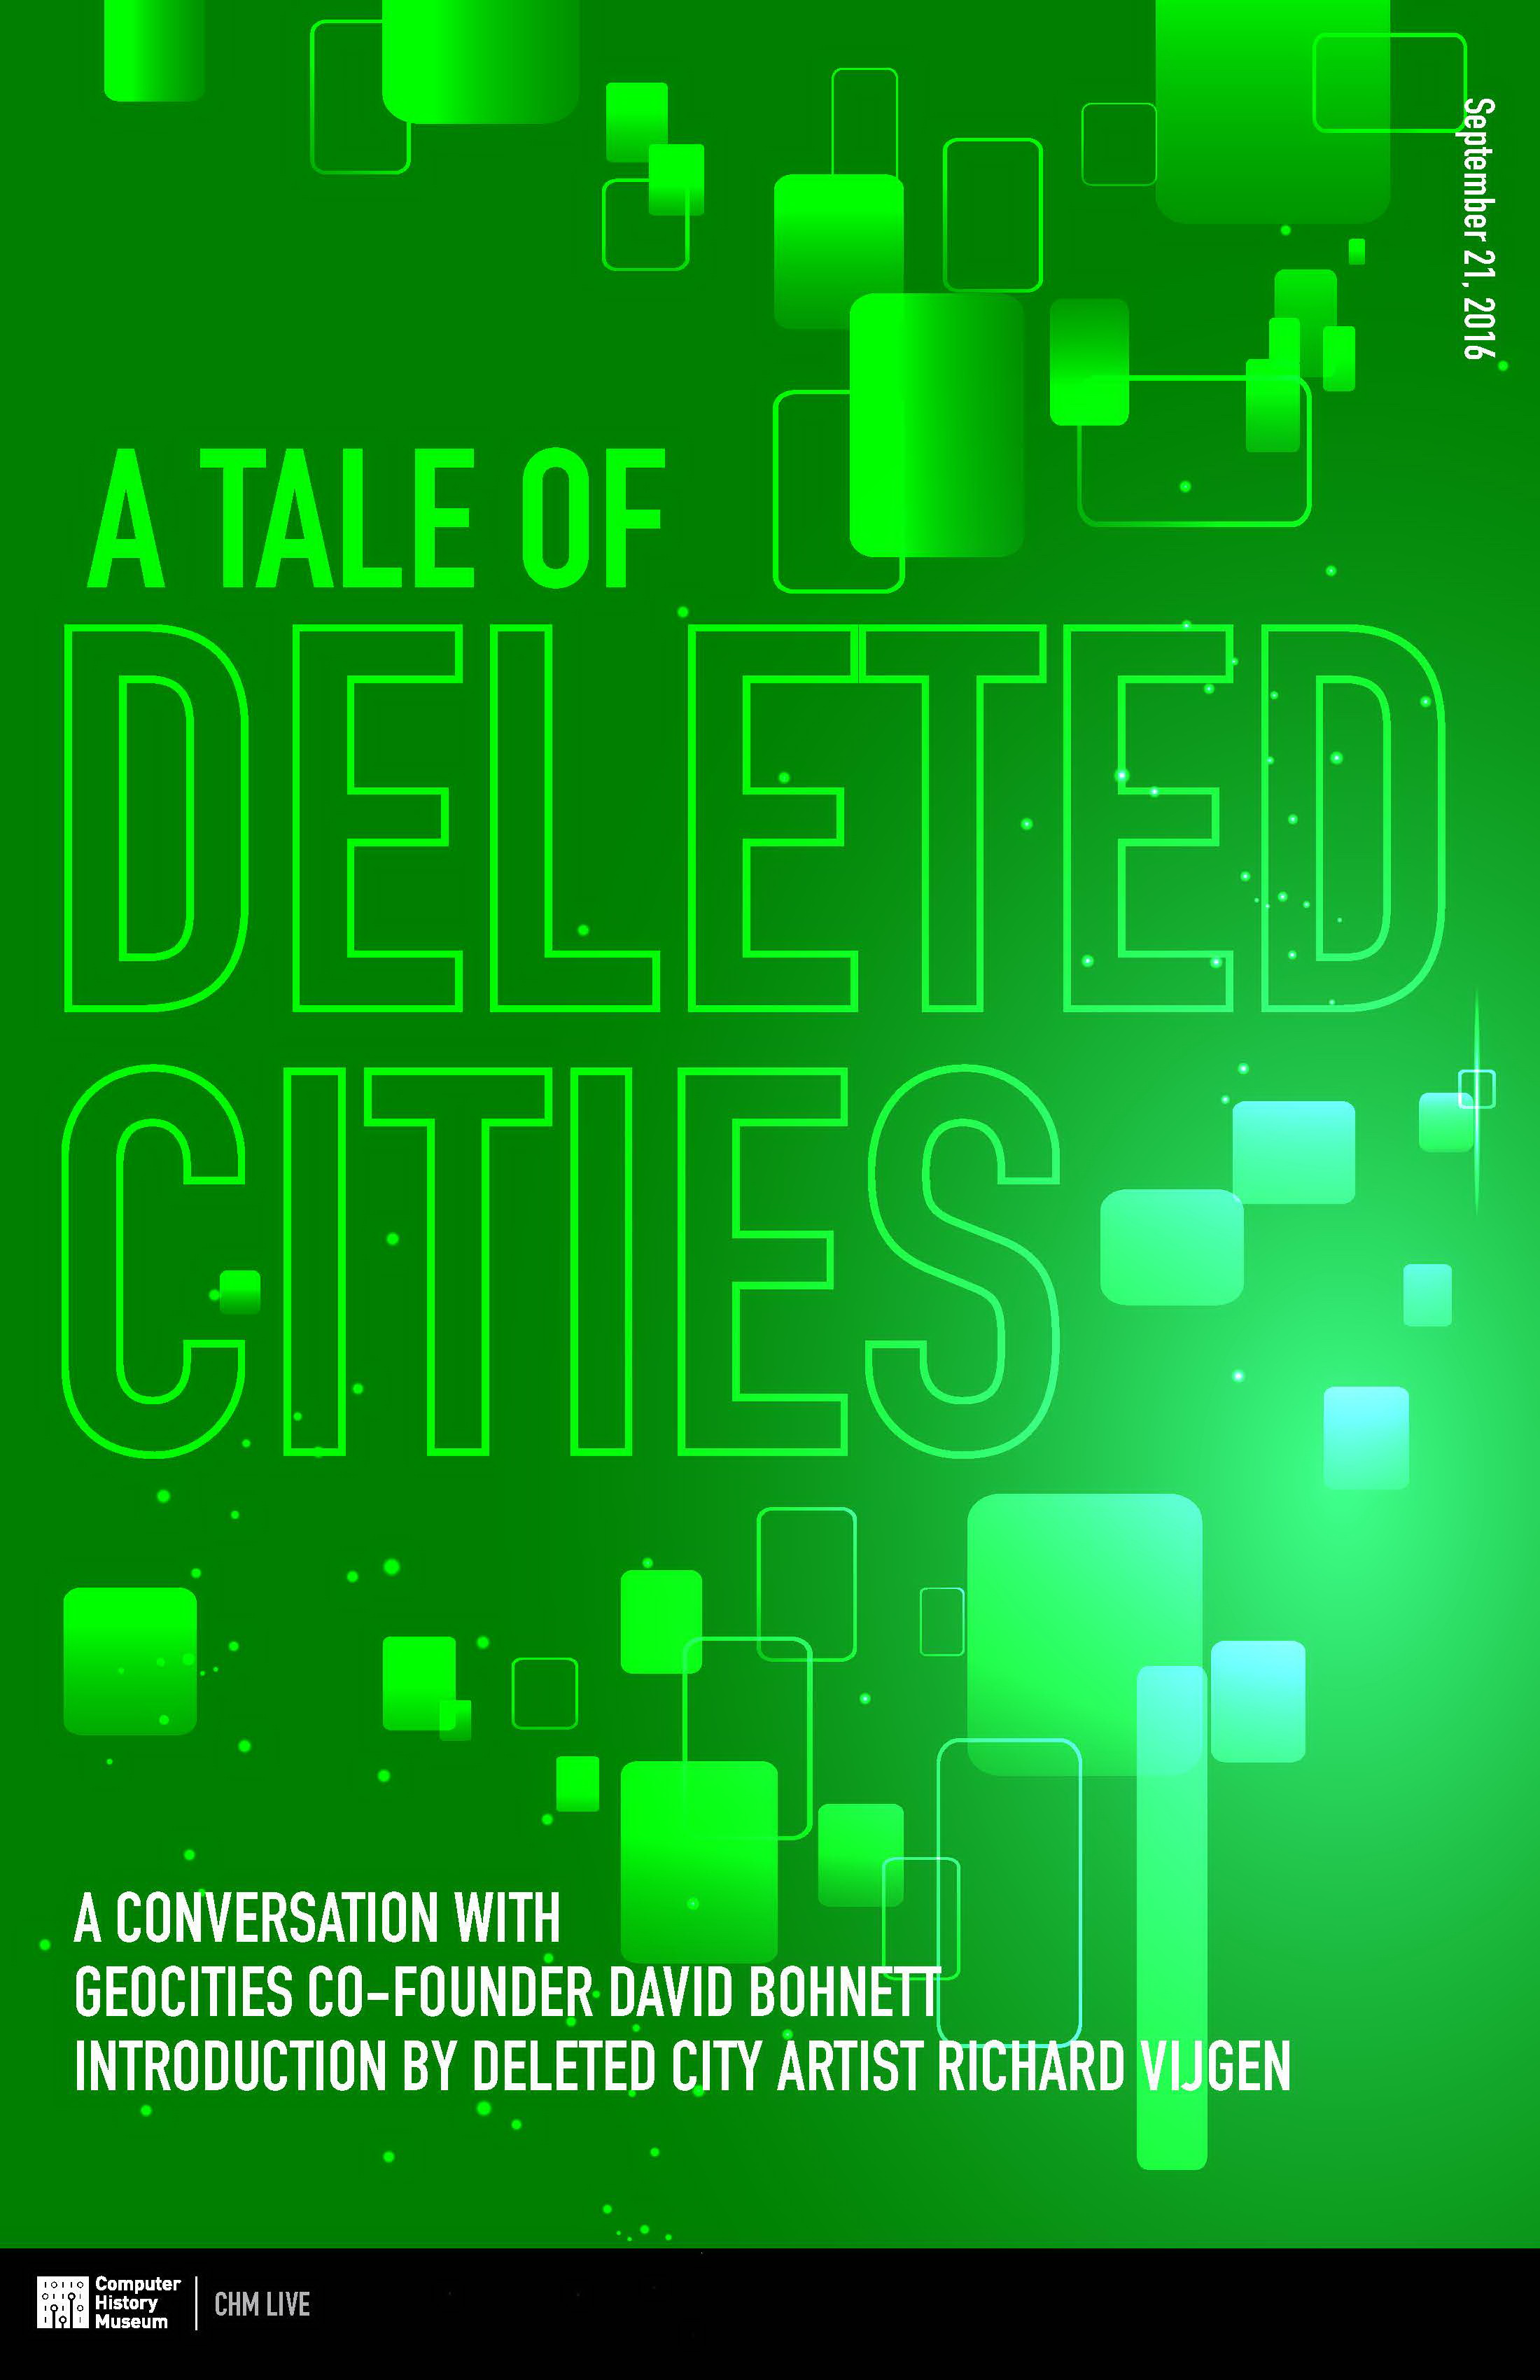 A Tale of Deleted Cities